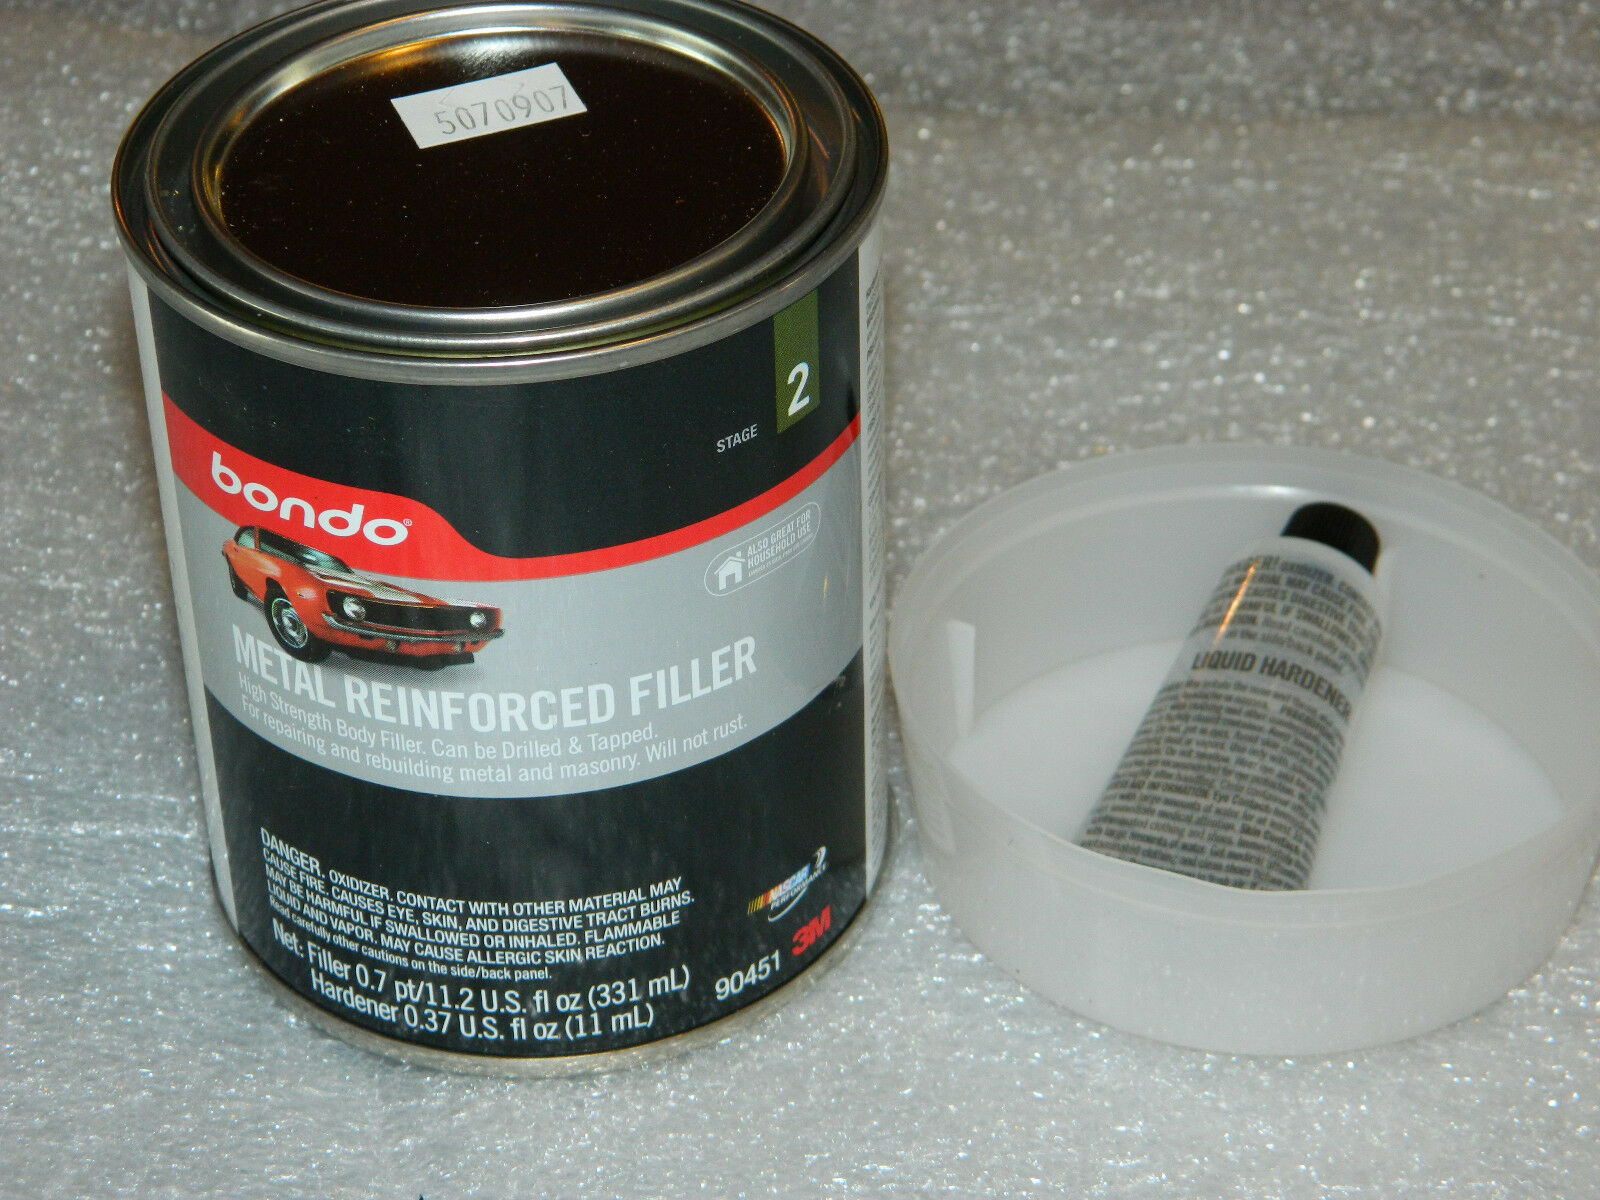 bondo autobody As with auto body filler, the goo in the can is composed of a liquid resin combined with powdered fillers to create a puttylike material as with body filler, the two components tend to separate with storage so it pays to stir the can before use.